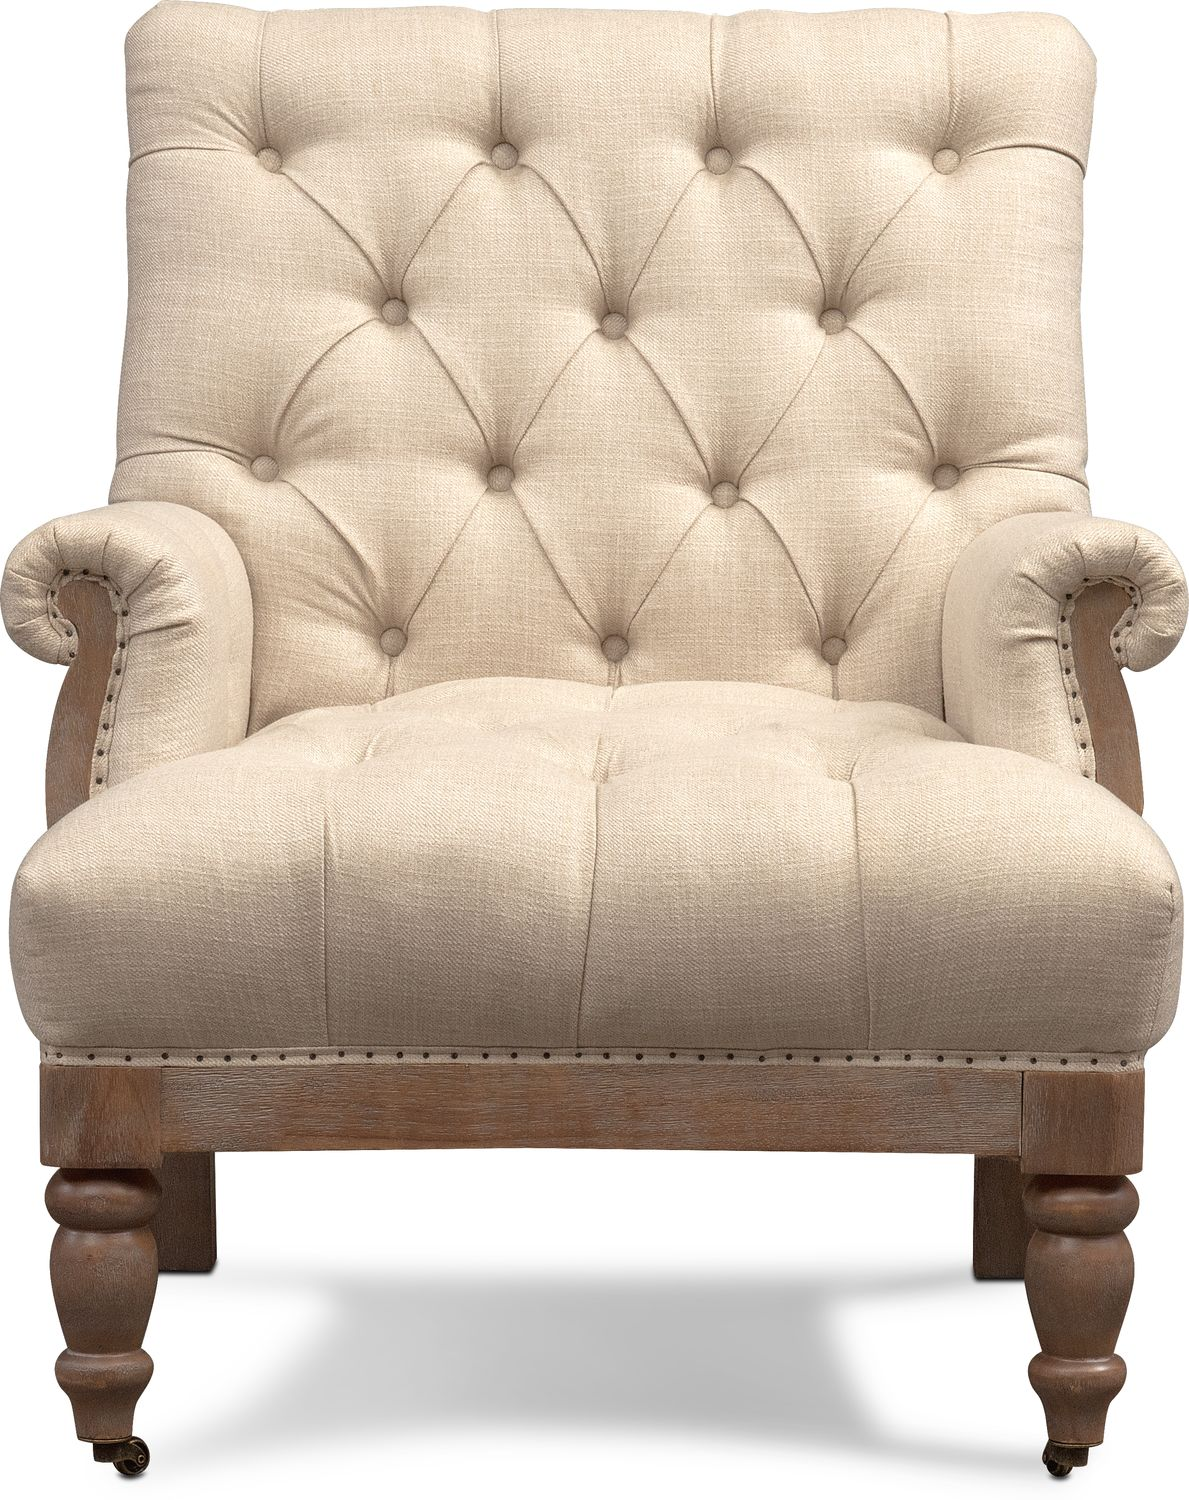 Bridget Accent Chair Cream Value City Furniture And